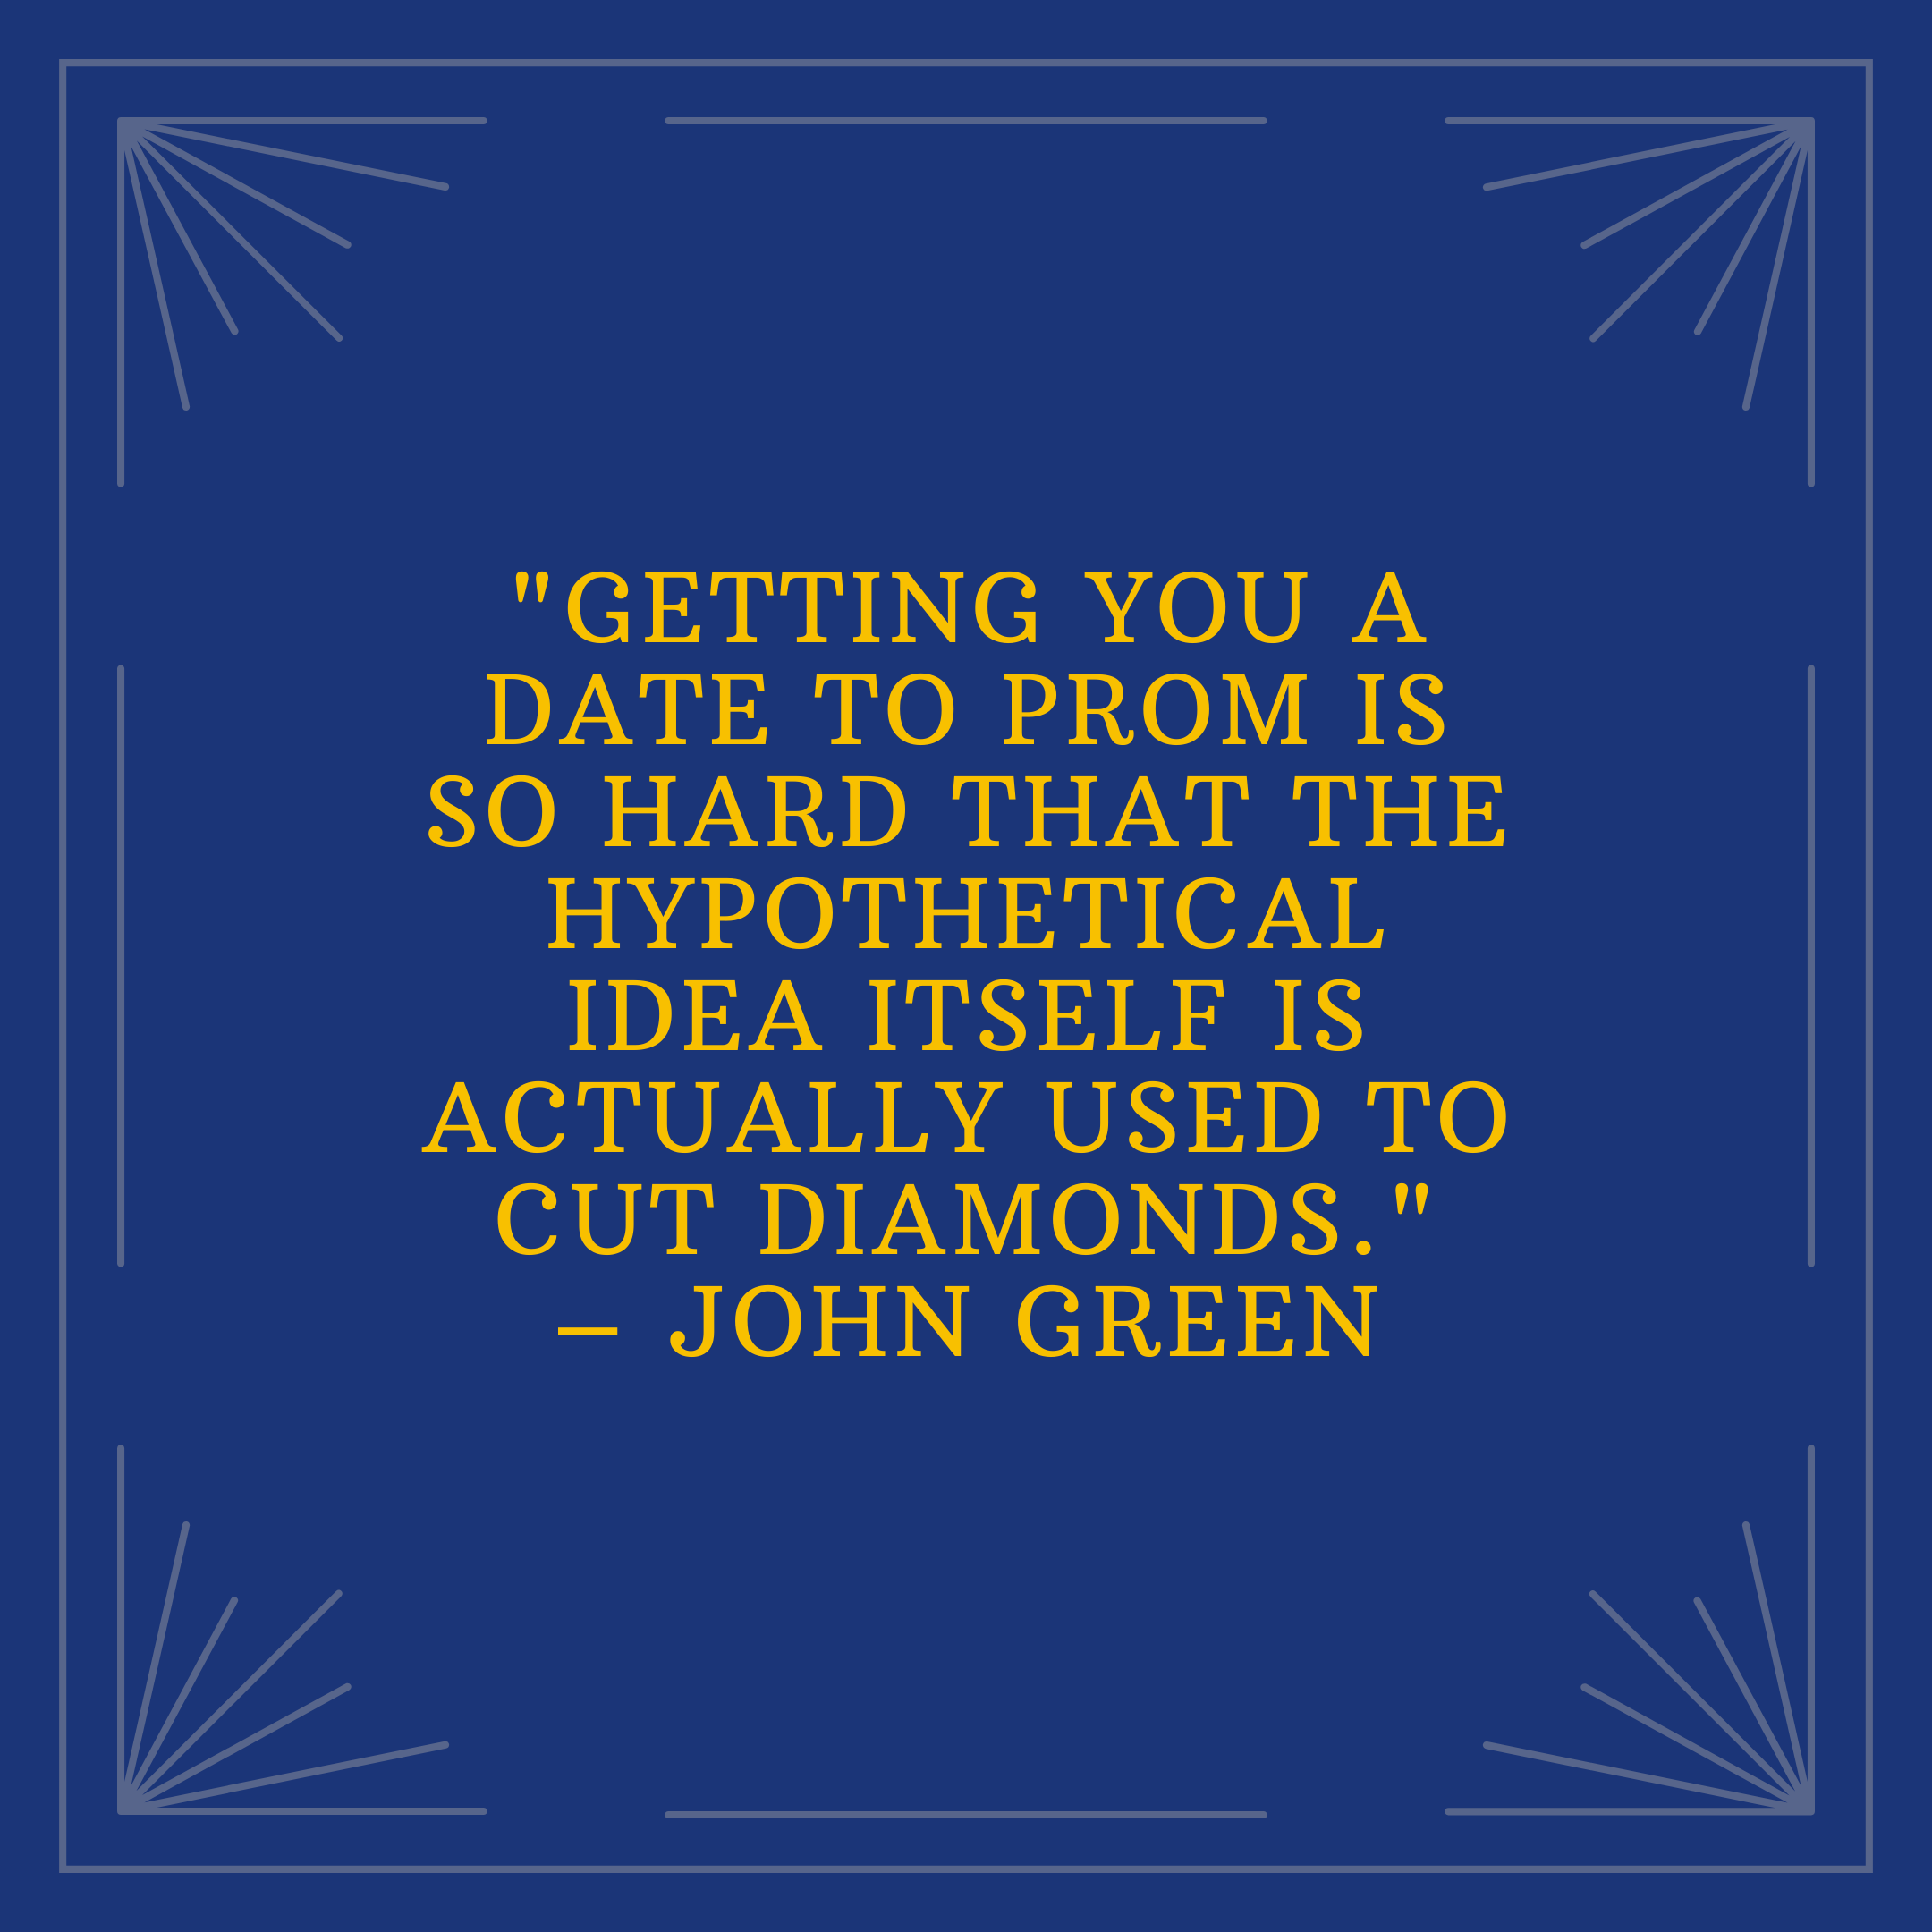 """""""Getting you a date to prom is so hard that the hypothetical idea itself is actually used to cut diamonds."""" –John Green"""